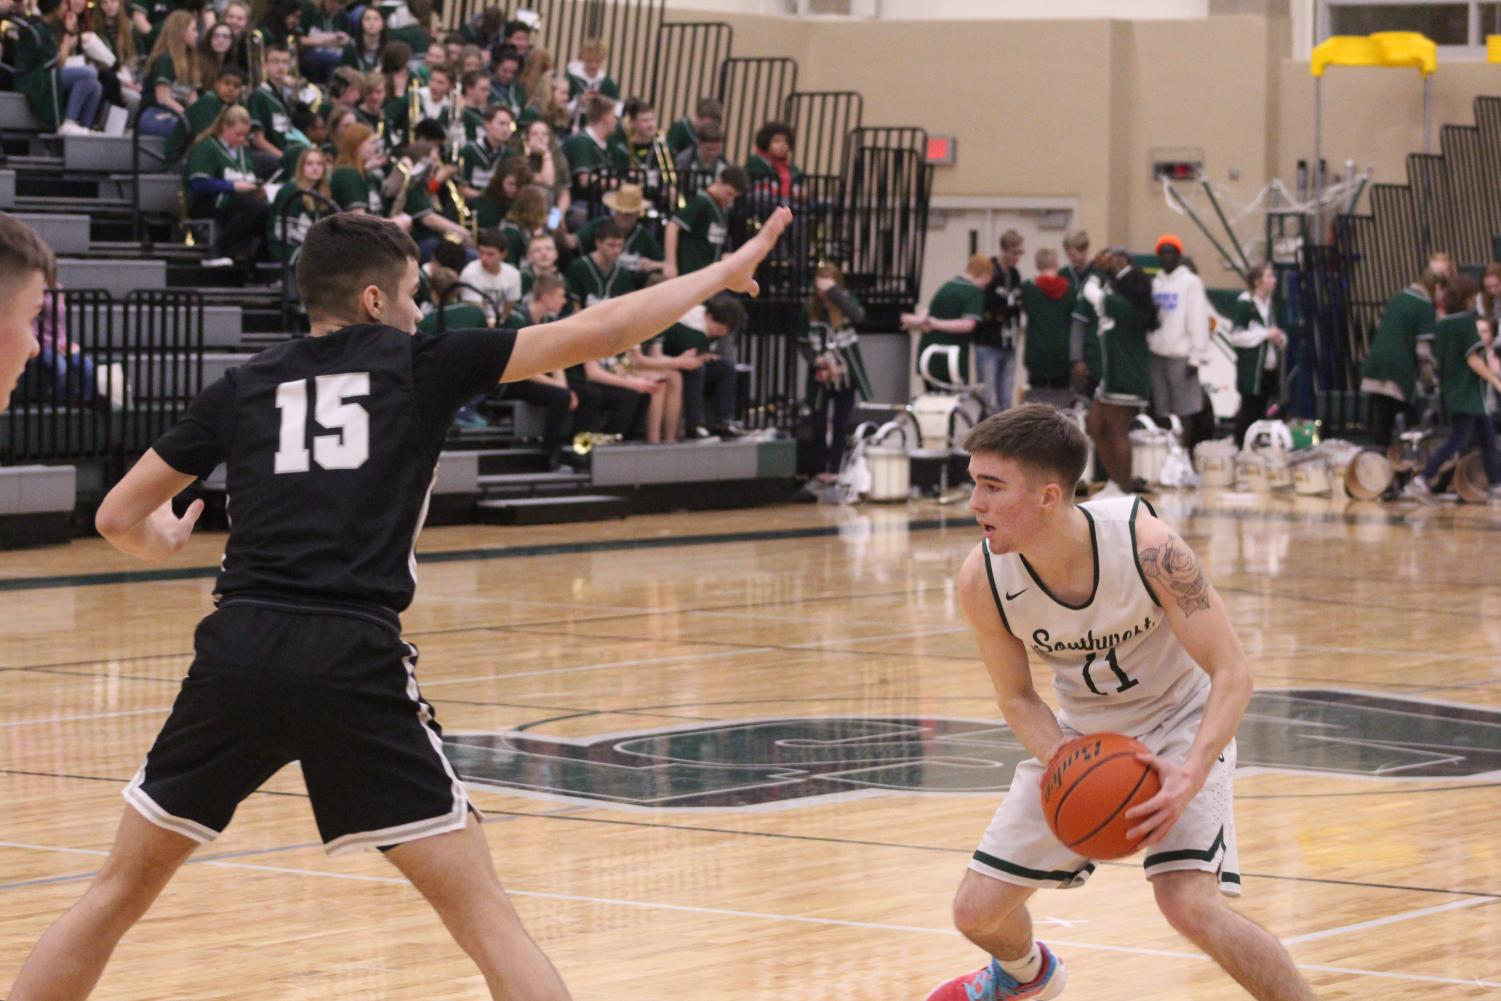 Southwest Falls With Explosive Offensive Night By Rockets